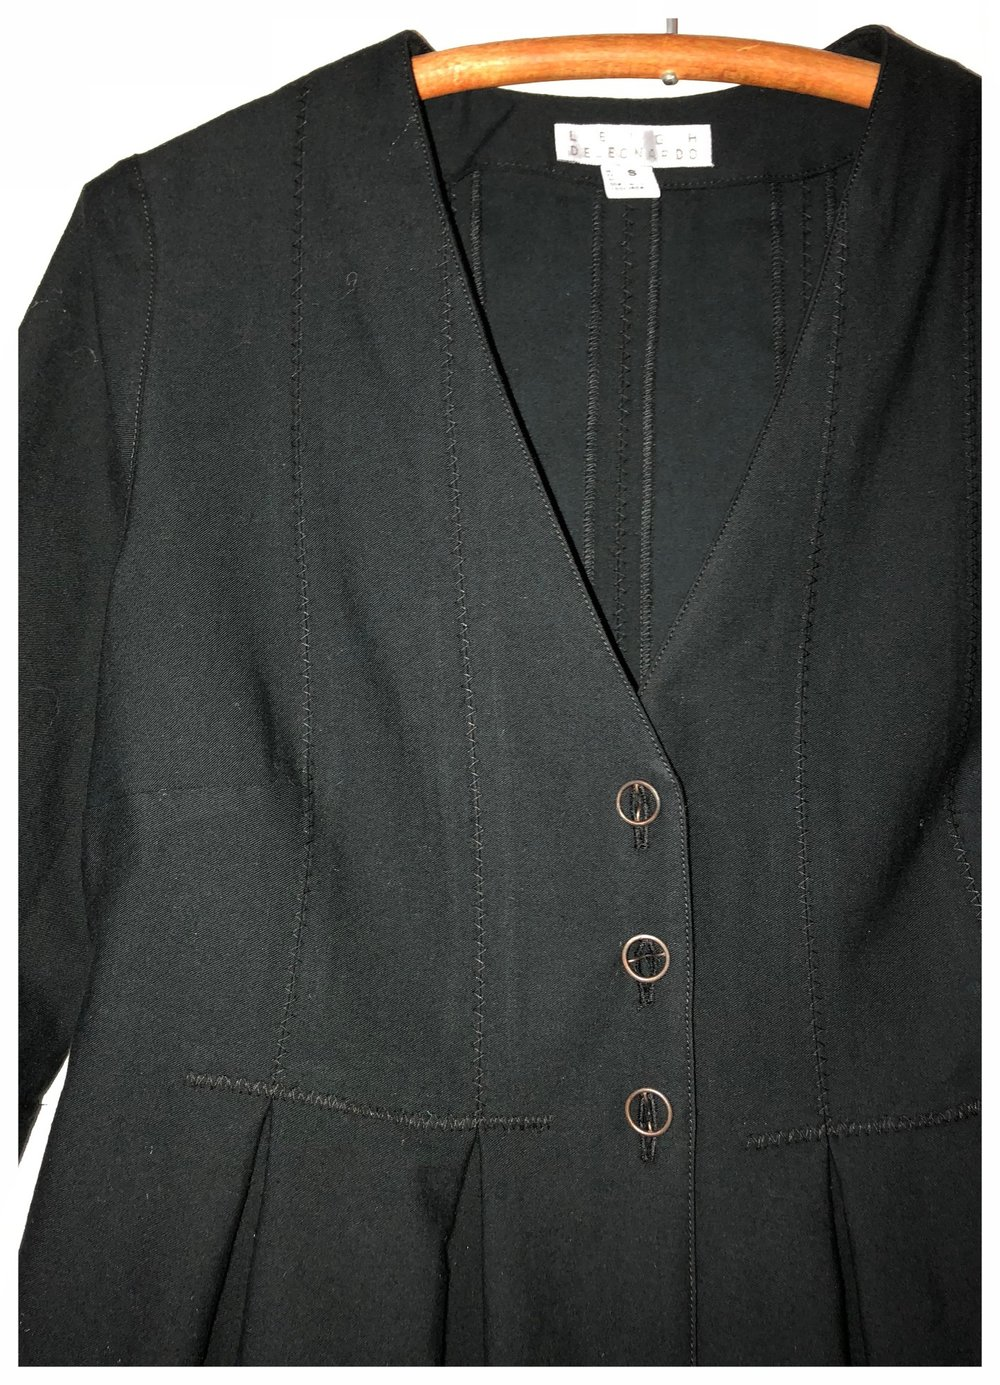 short pleats jkt detail.jpg